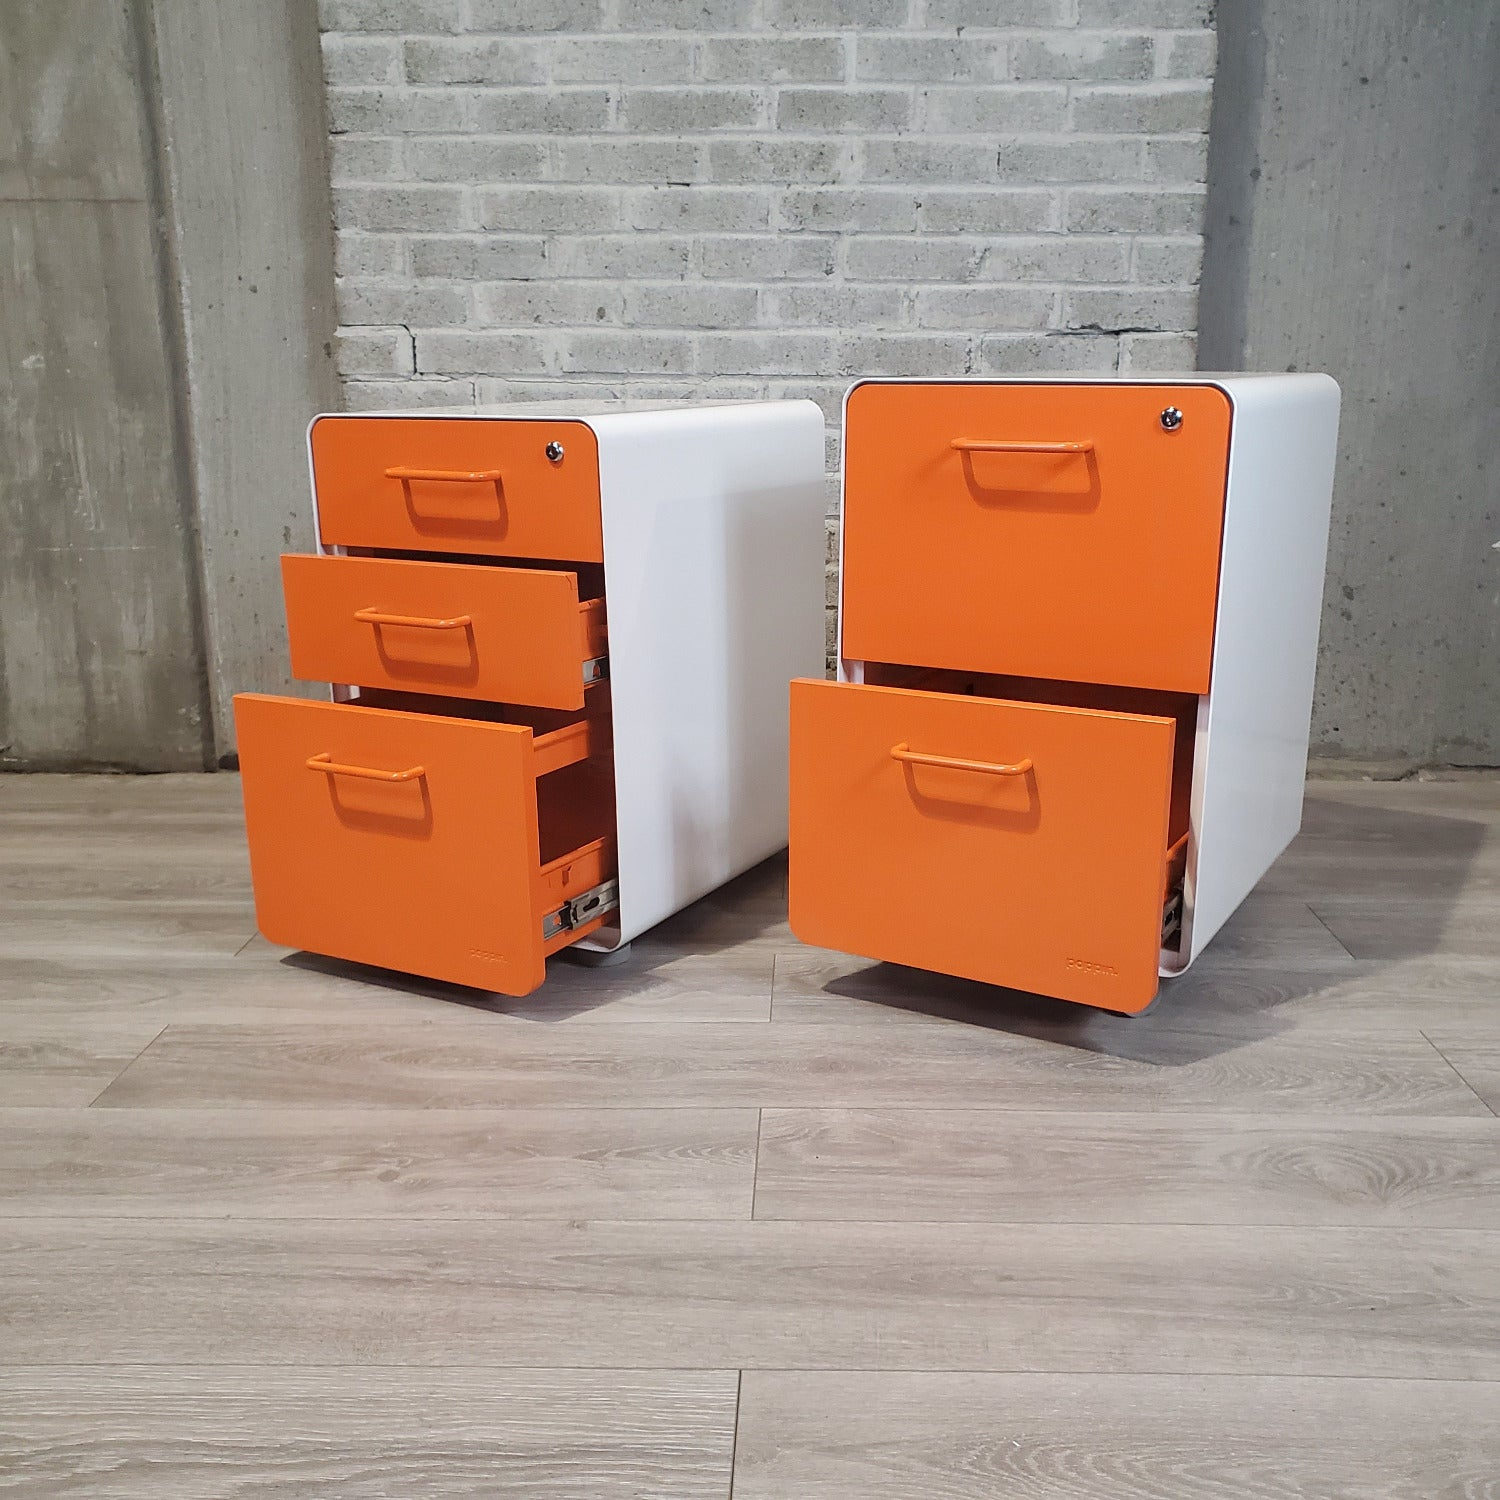 Pre-Owned Orange and White Poppin Stow Pedestal Files - Duckys Office Furniture